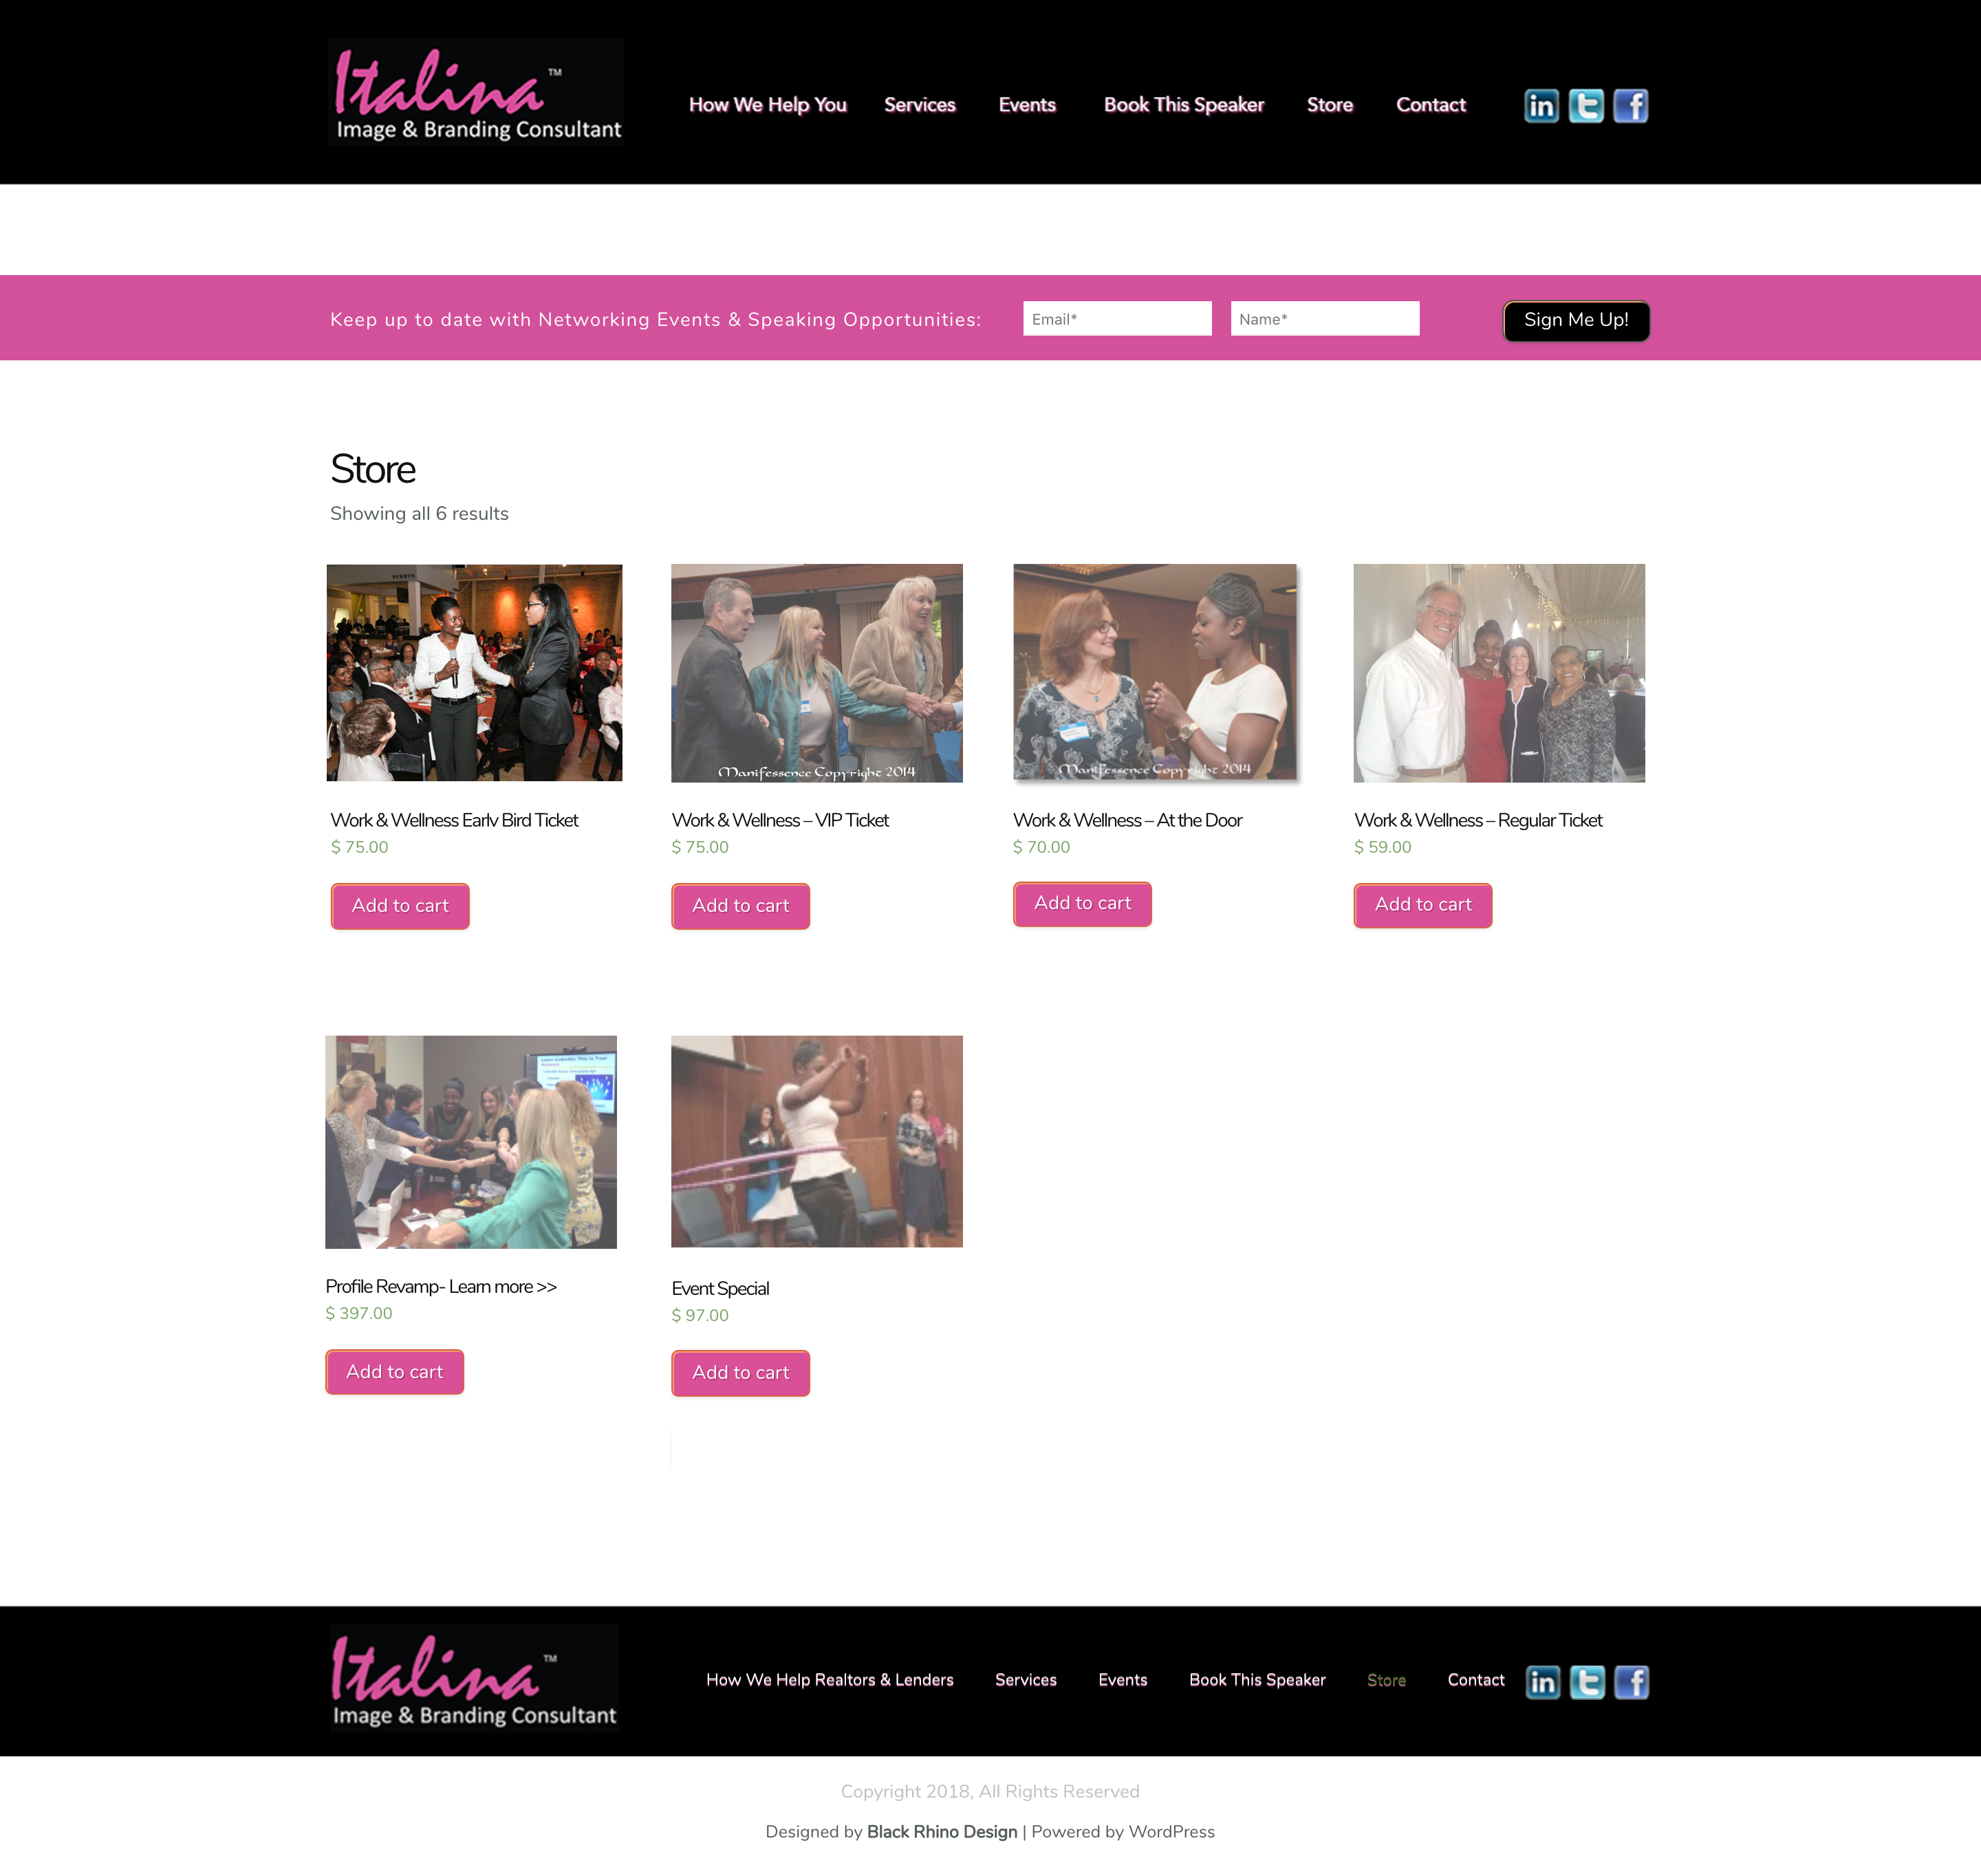 Italina Store Page